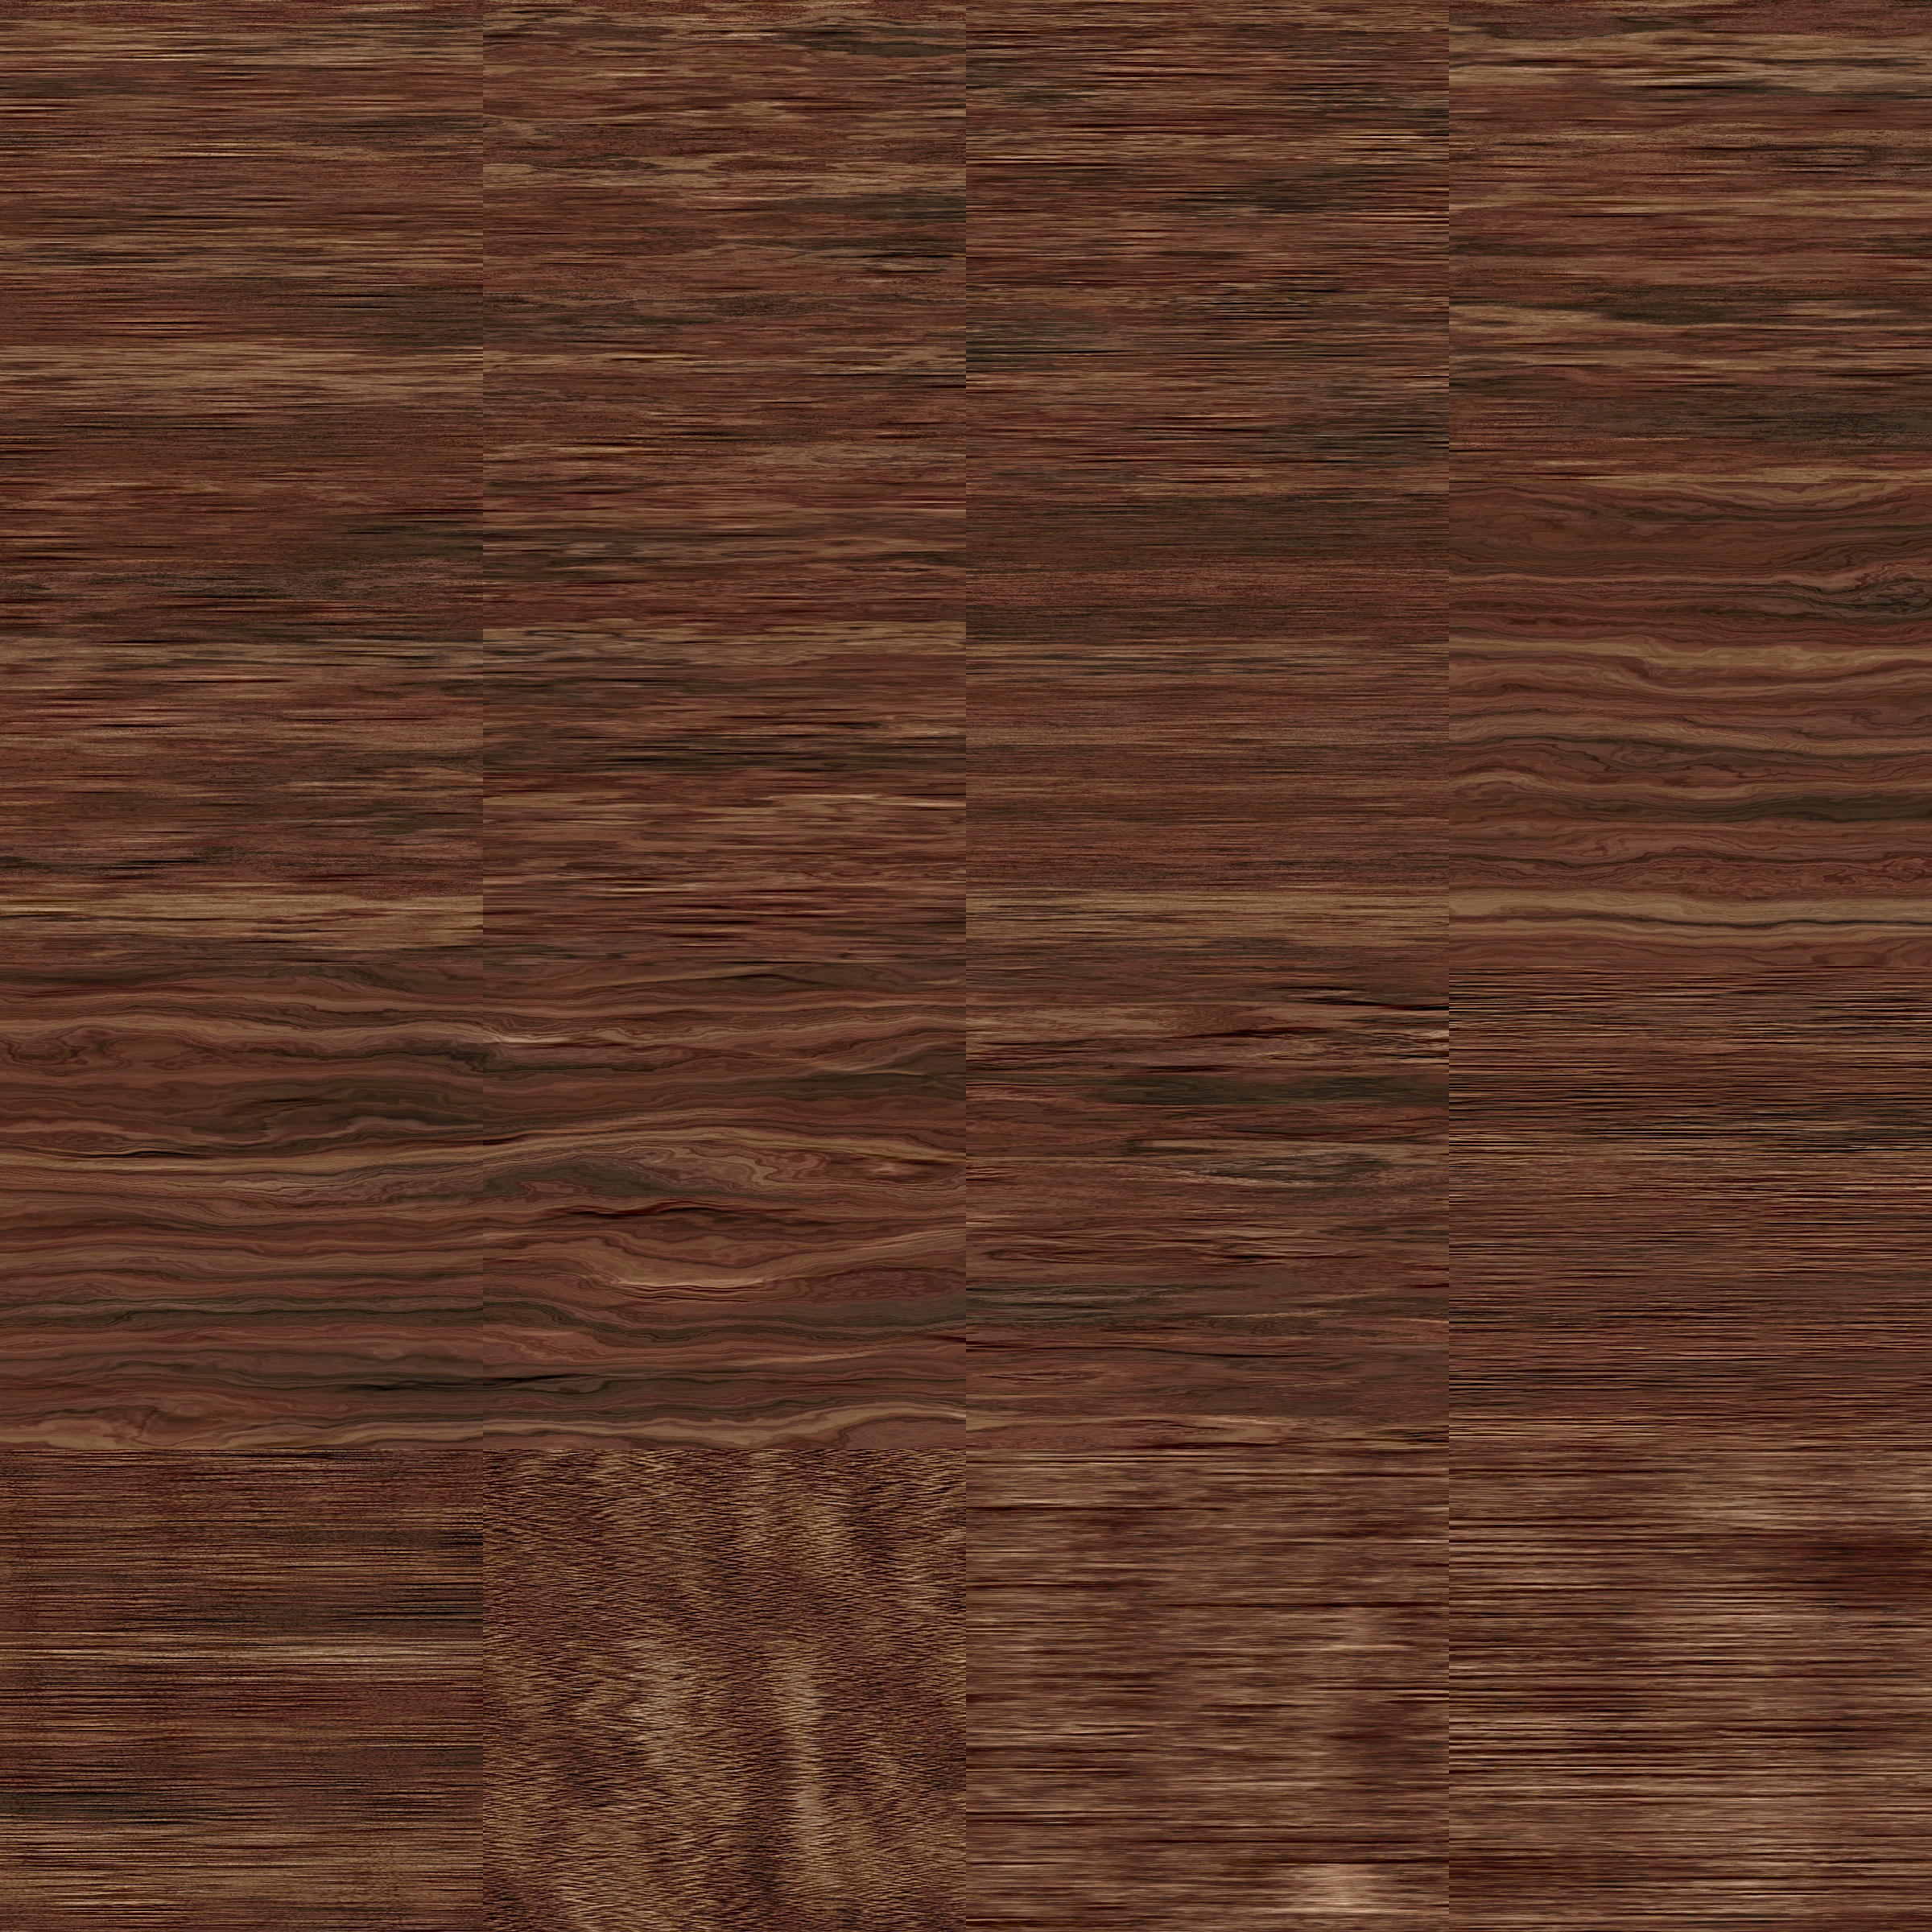 weathered wood grain by Lazur URH